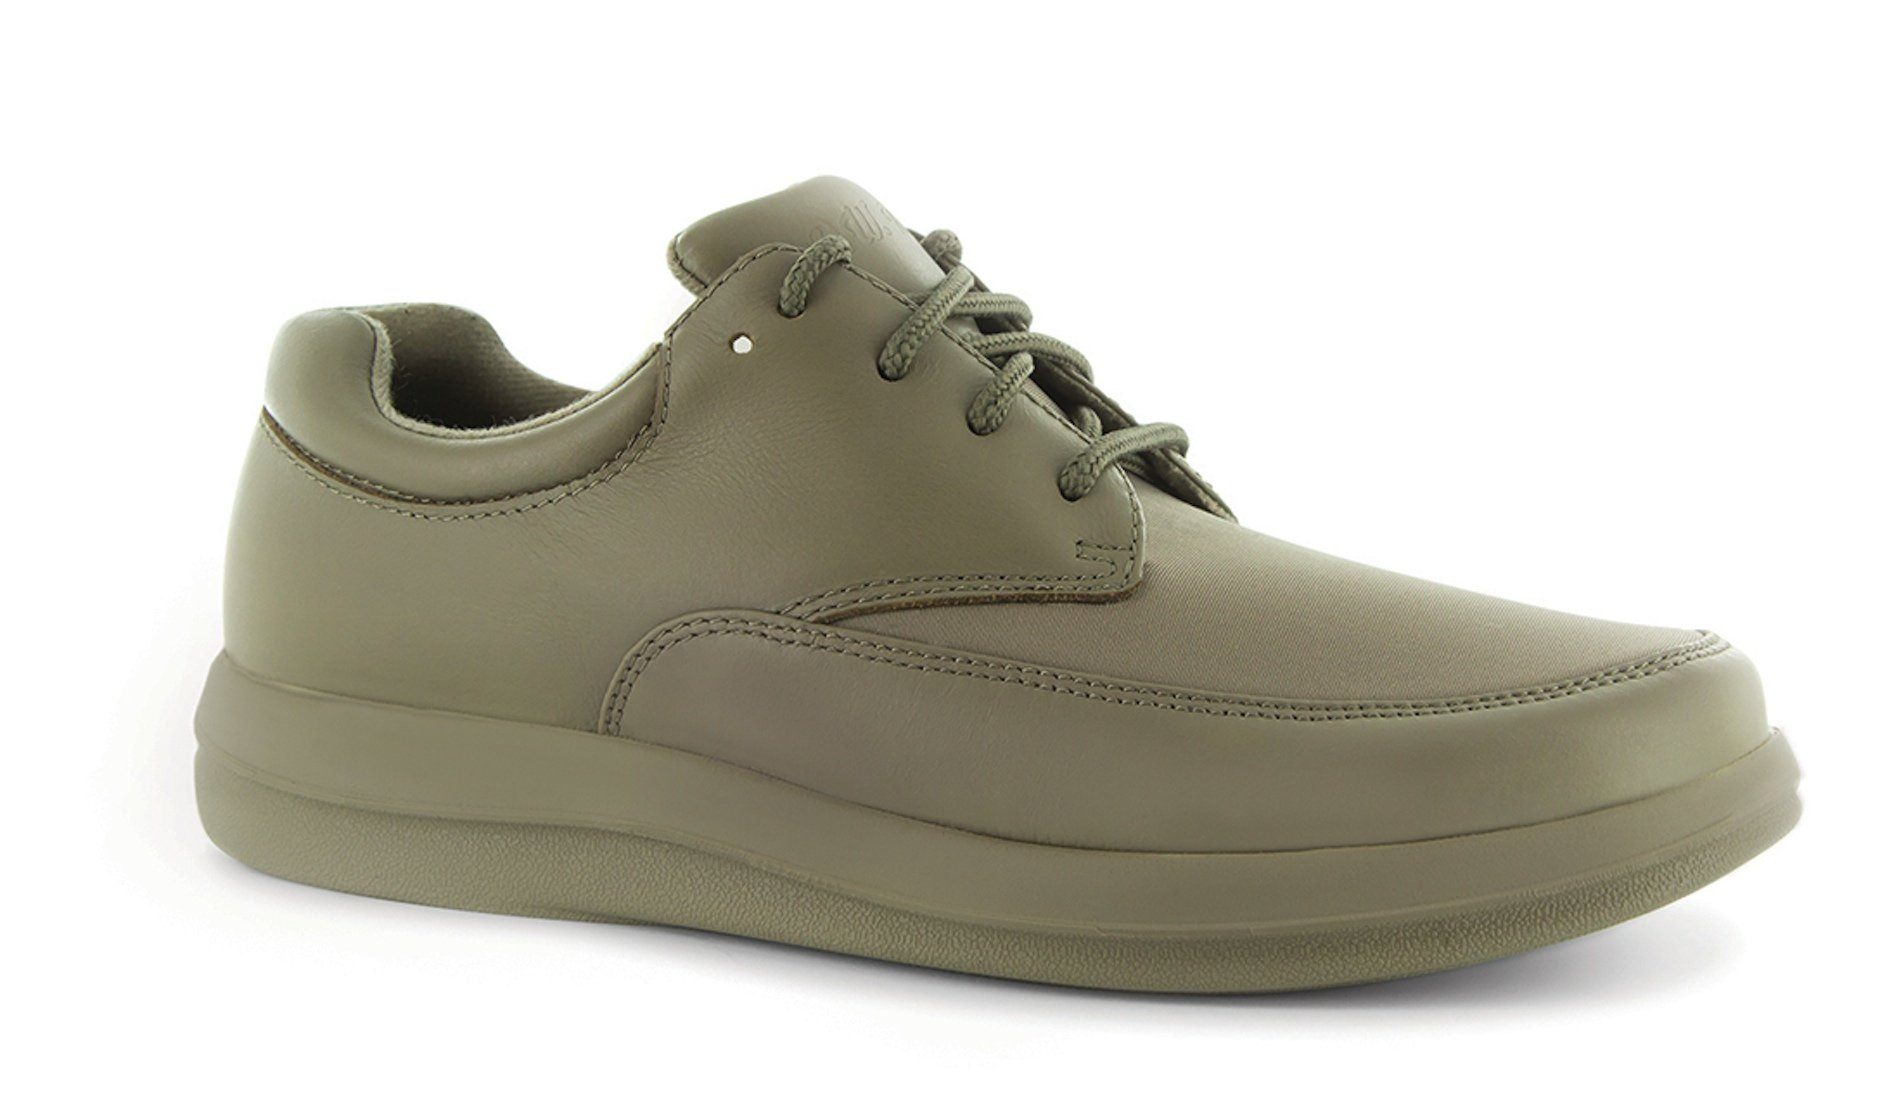 P W Minor Pleasure Women's Therapeutic Extra Depth Shoe: Taupe 10 Wide (D) Velcro by P.W. Minor